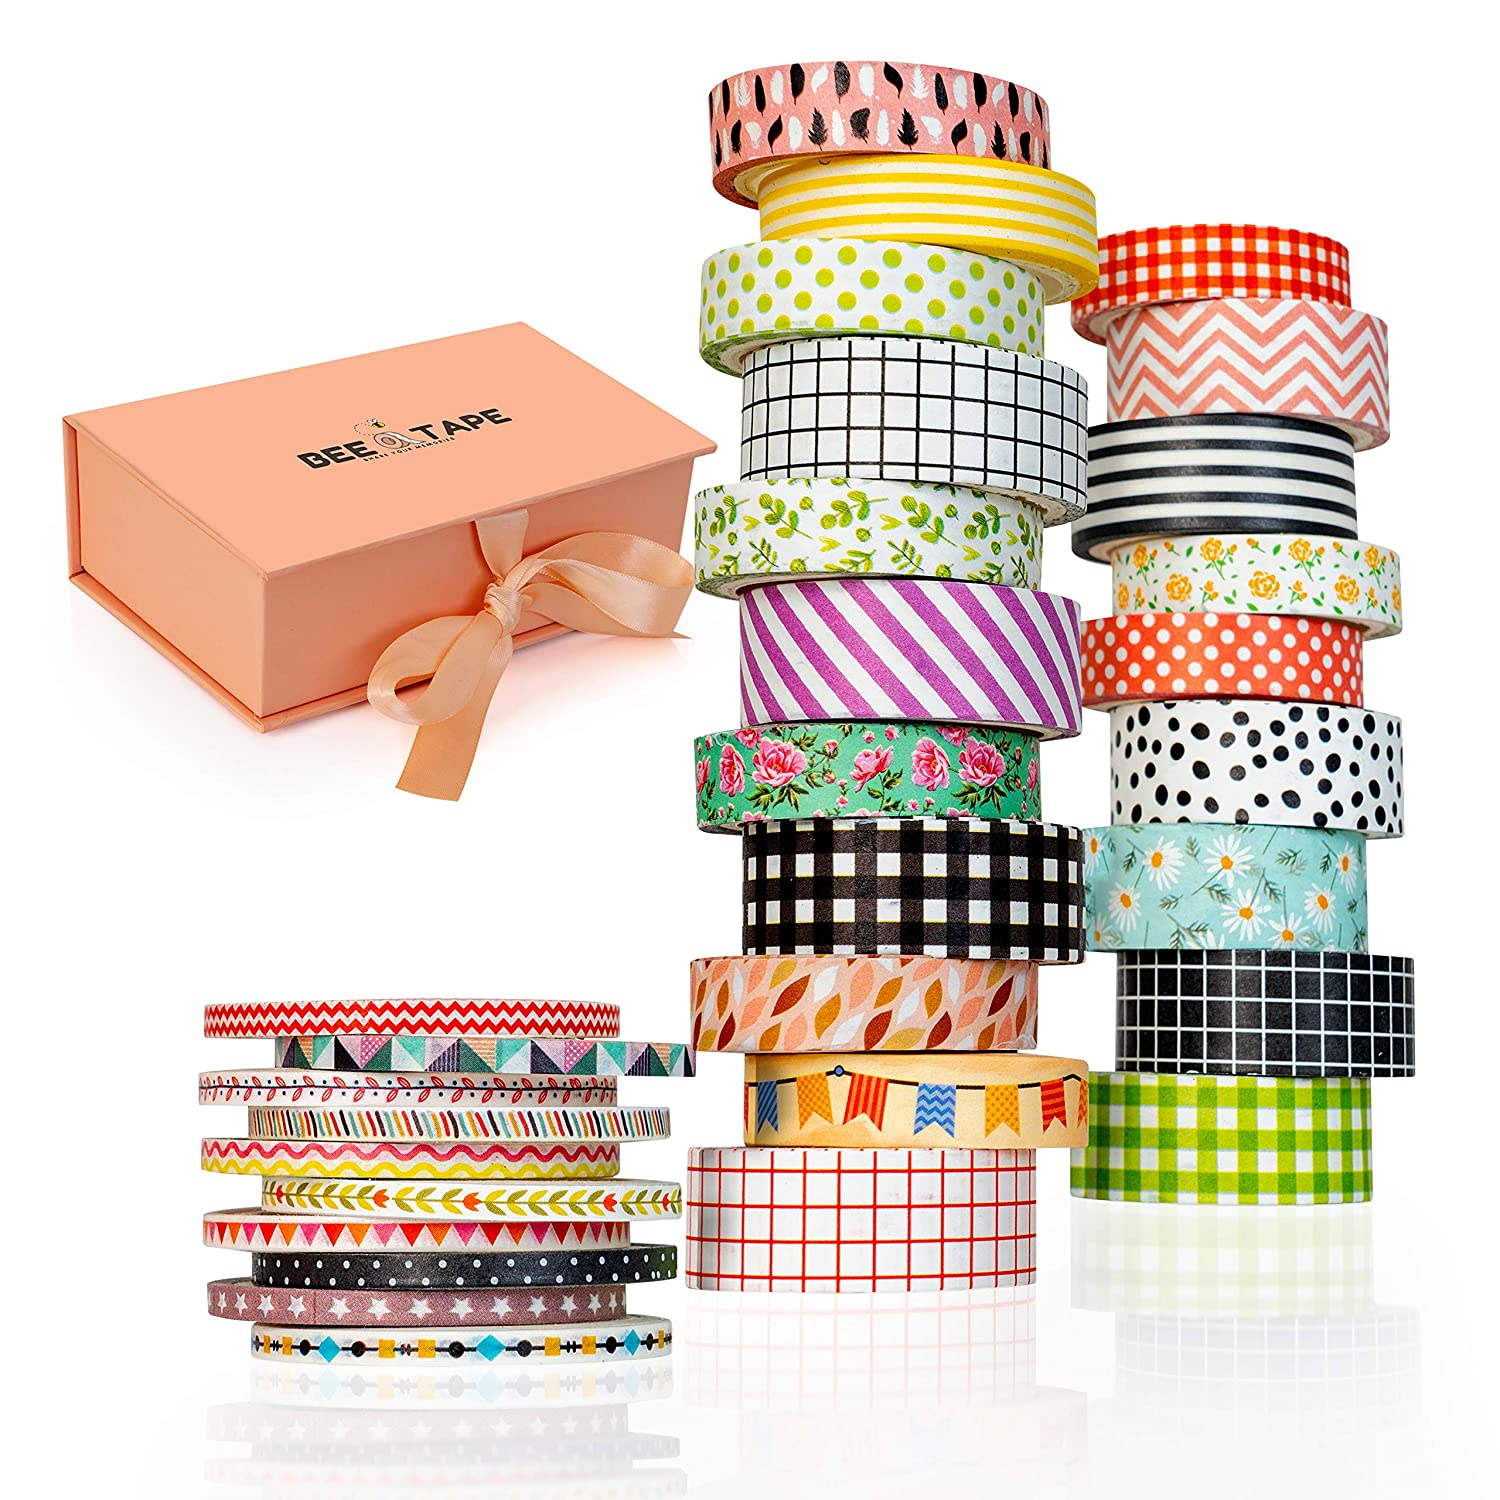 Washi Tape Set Gift Box, 30 Rolls 3 Sizes 15mm 10mm and 3mm Unique Arts and Crafts Gift, Decorative Masking Craft Tapes Perfect for Scrapbook, DIY Bullet Journal, Planner